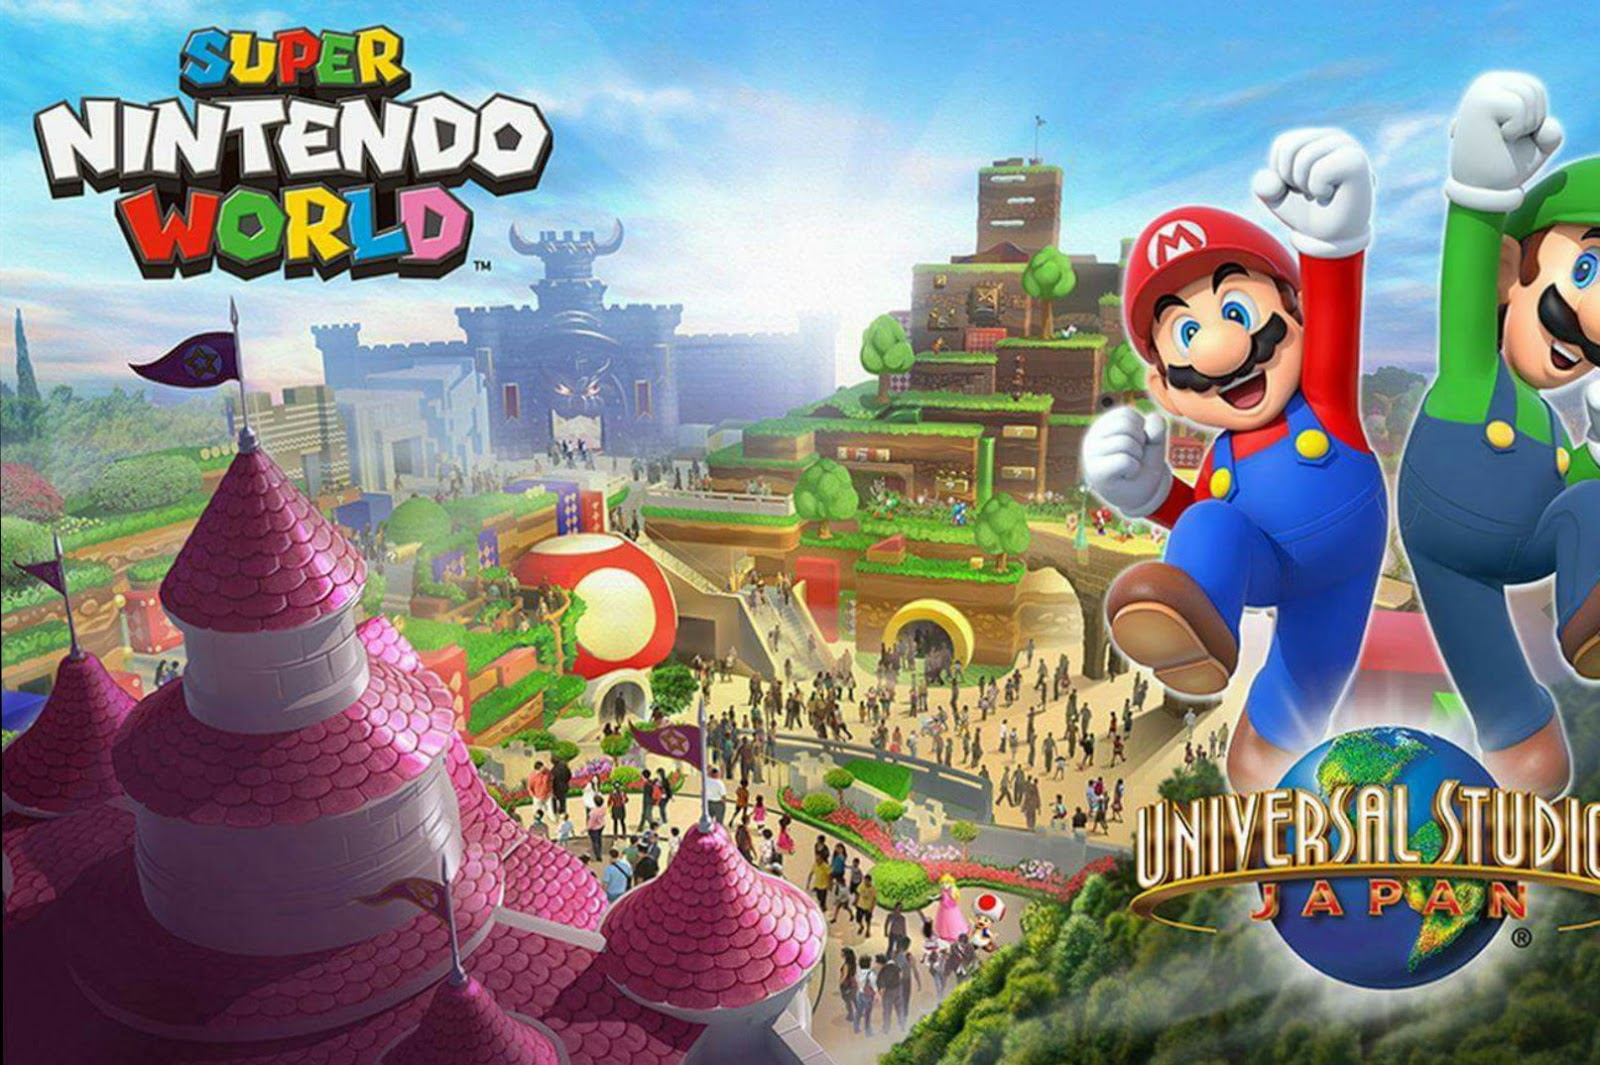 Super Nintendo World is coming to Universal Studios Japan by 2020